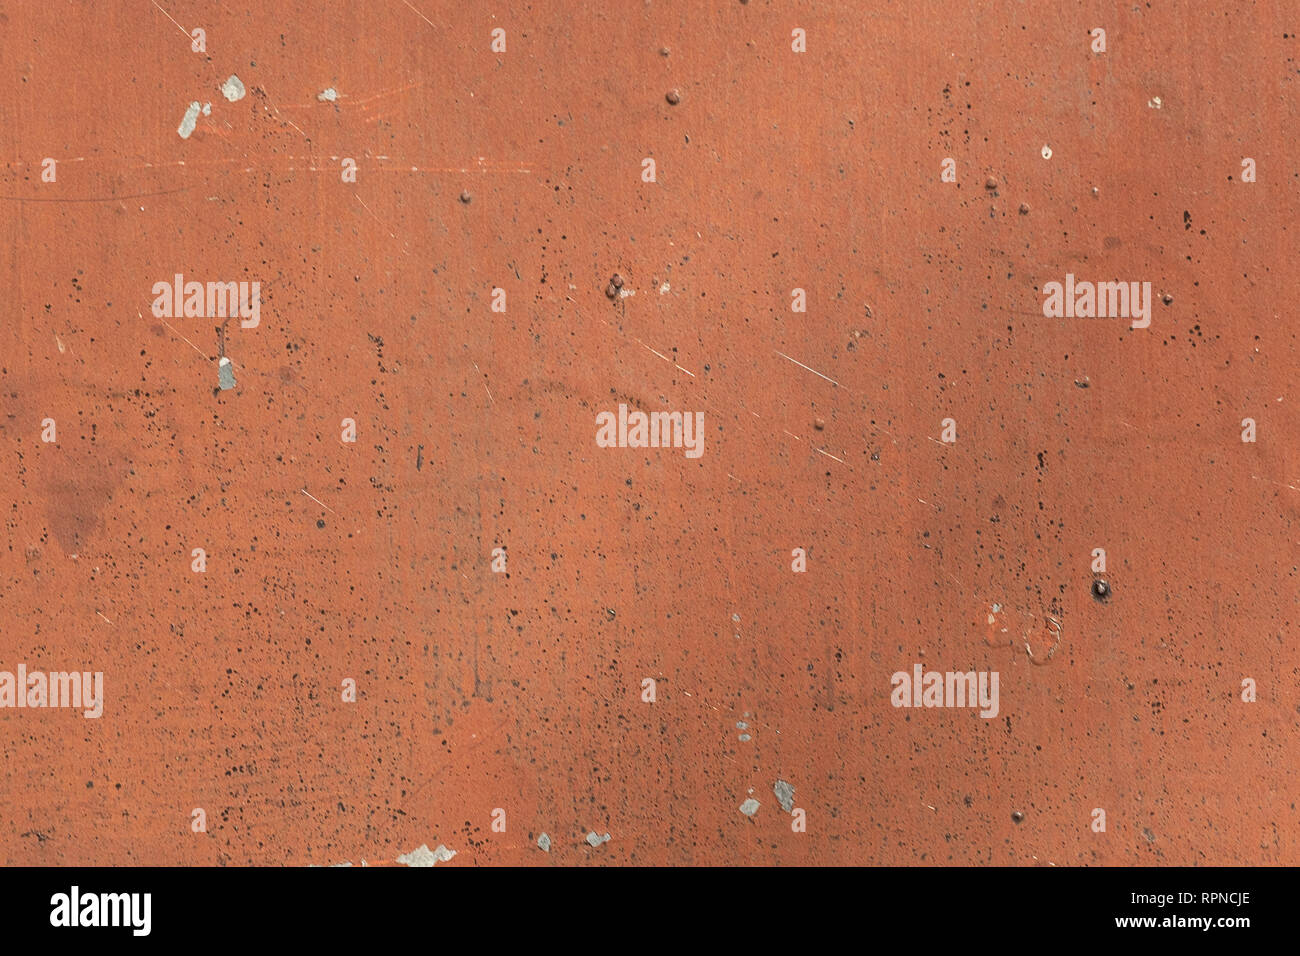 texture background metal reddish-brown color with small white and black dots - Stock Image